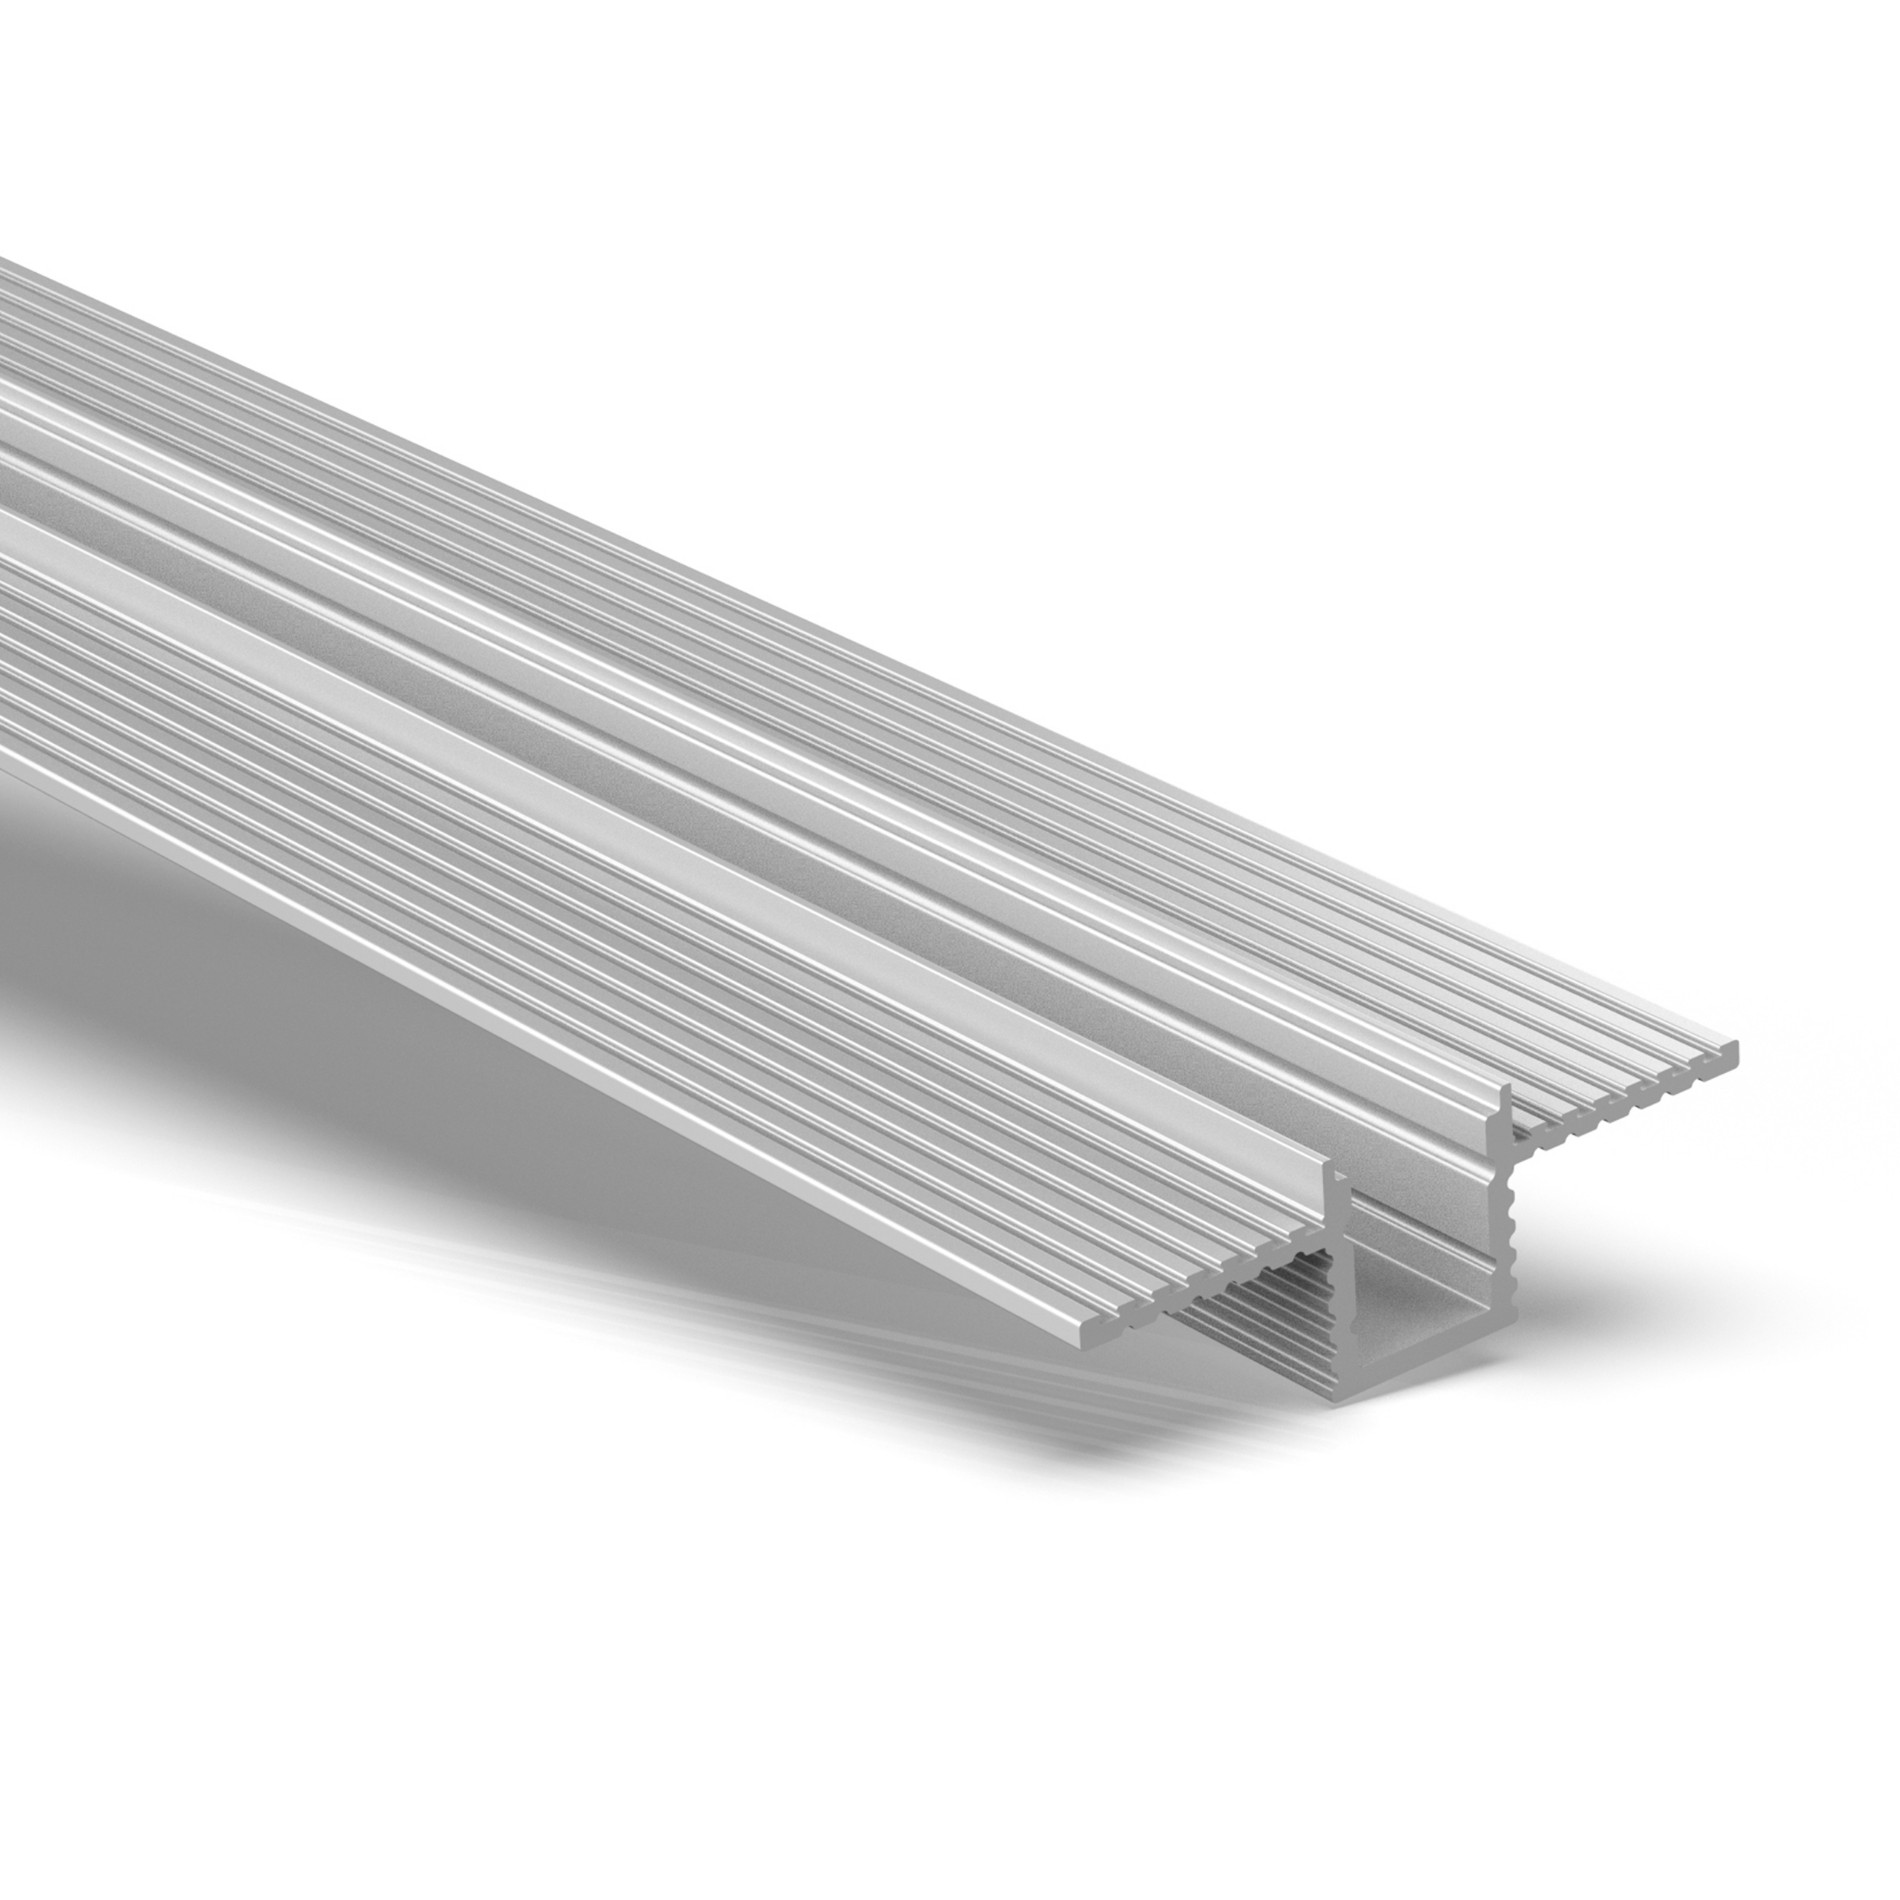 CT9 Trimless Aluminium Extrusions for recessing into plasterboard walls and ceilings 28x9mm